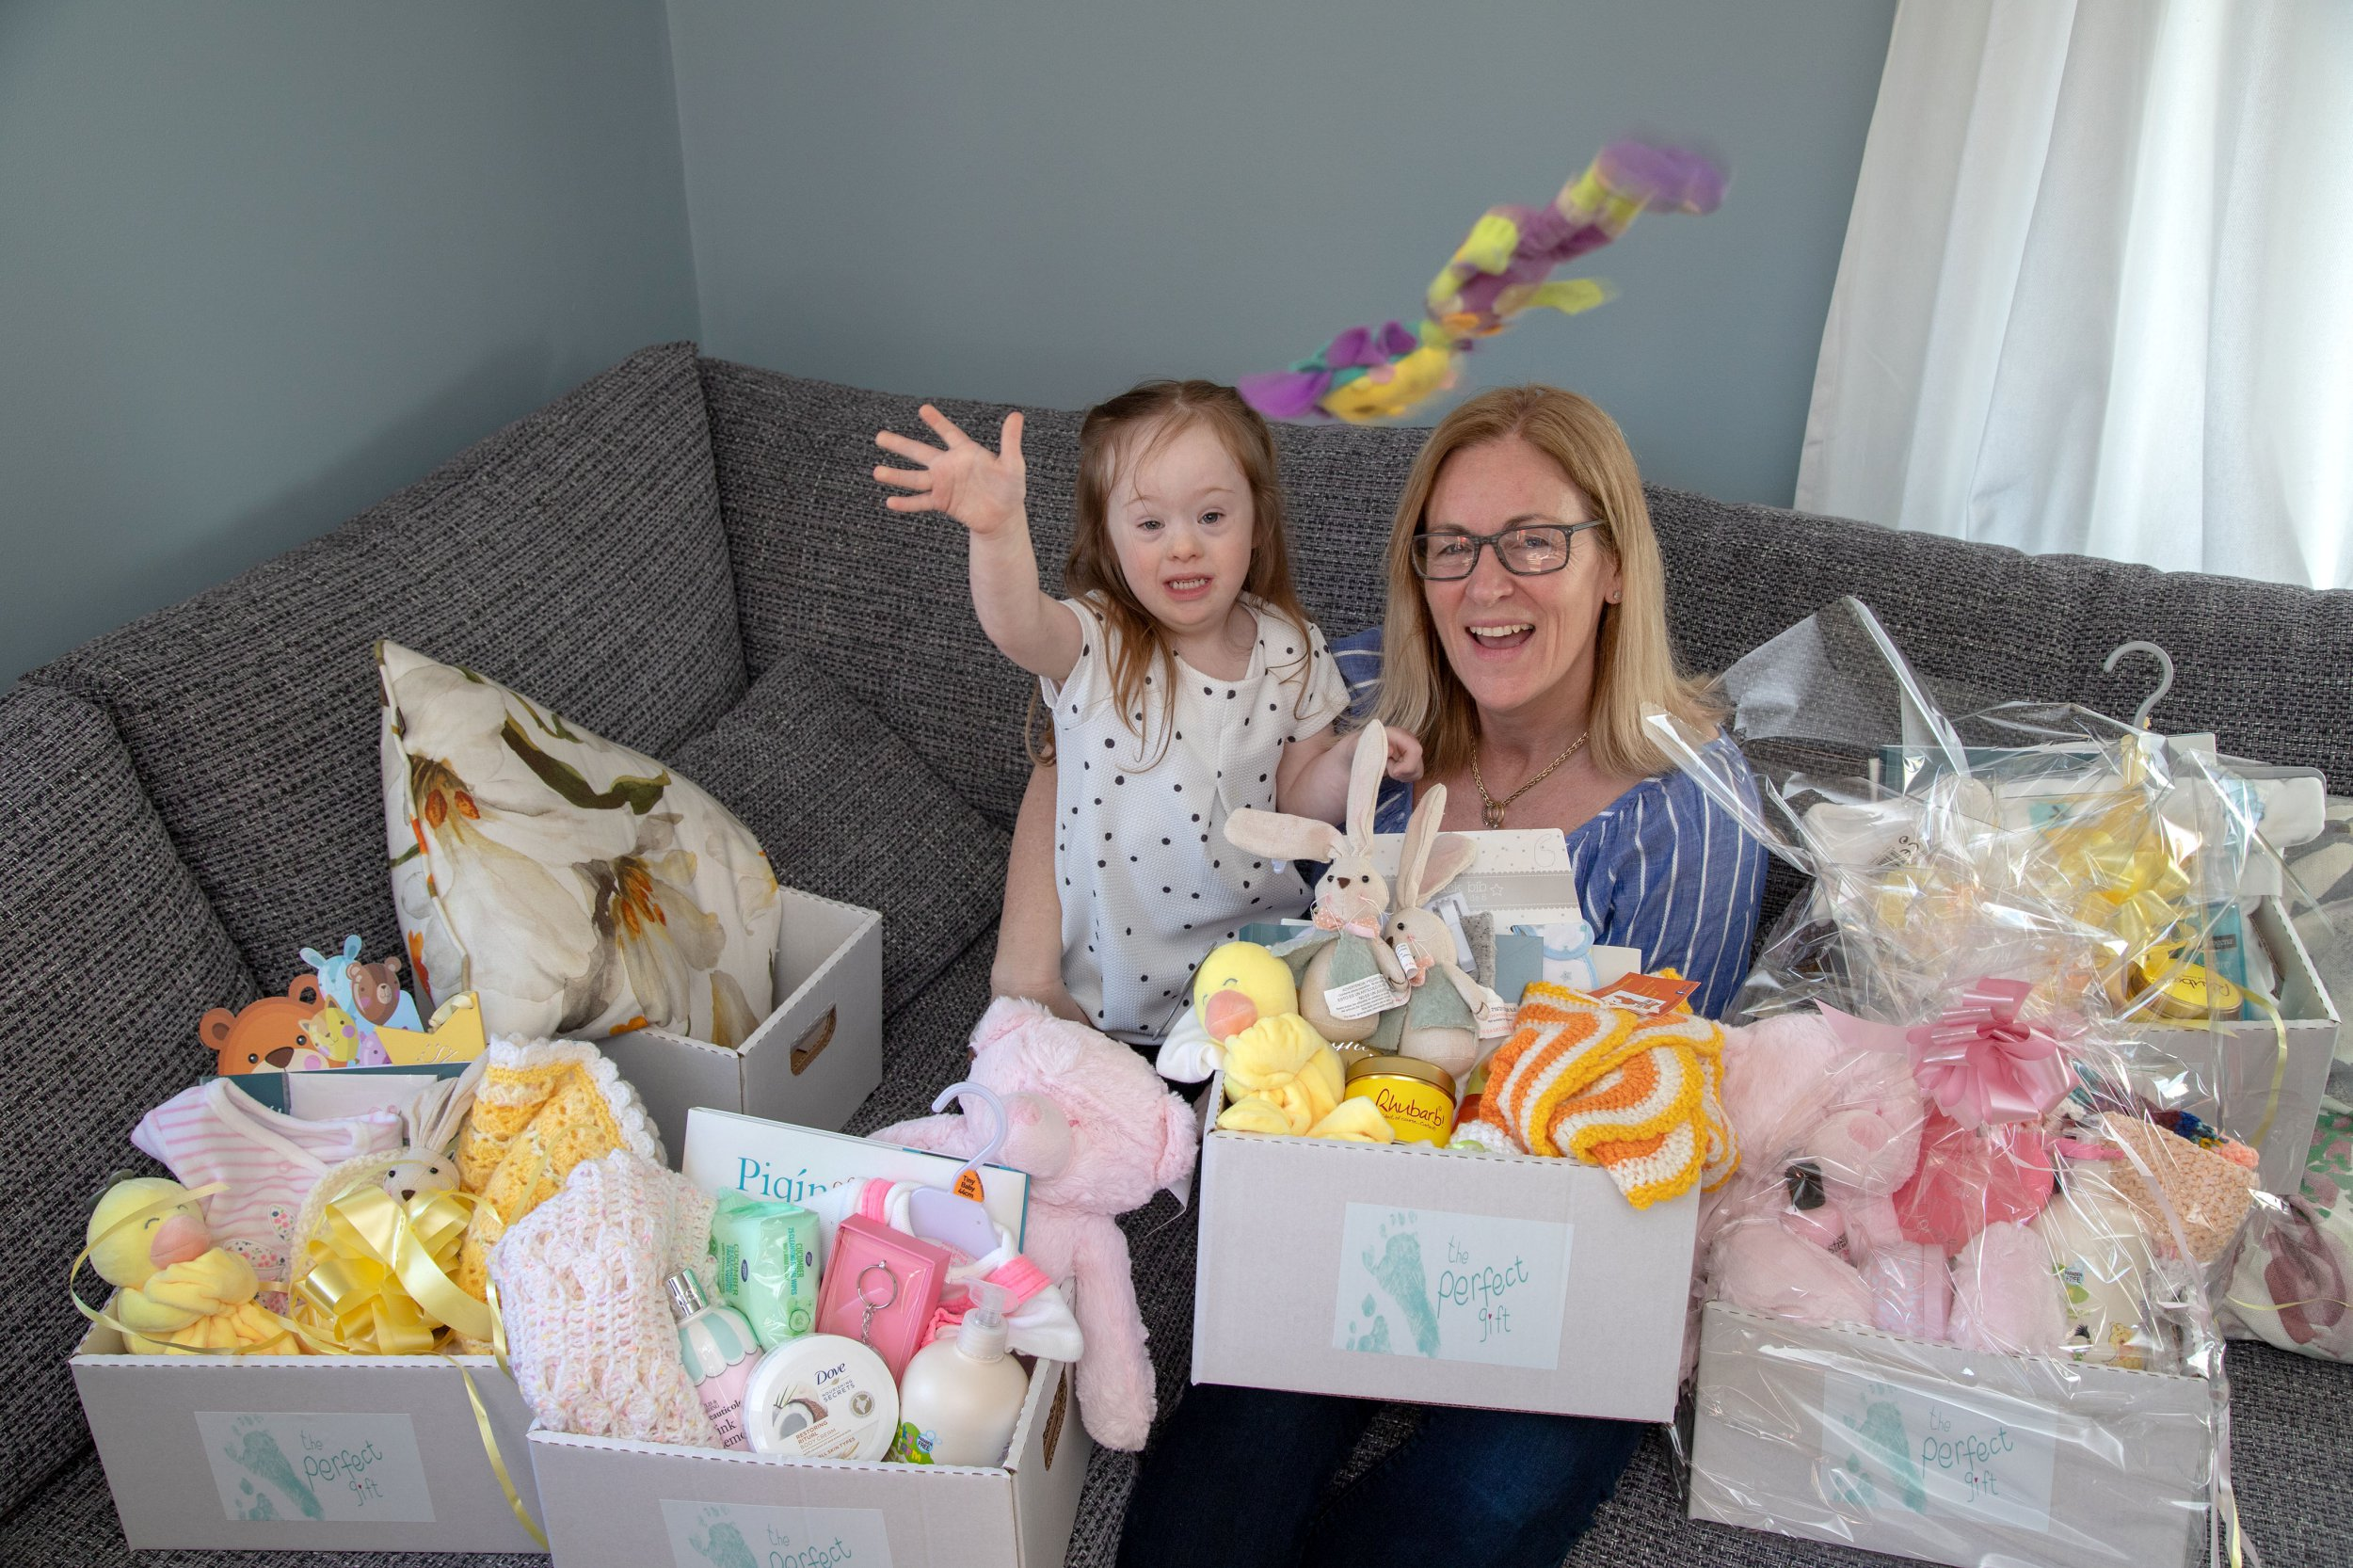 PIC FROM Caters News - (PICTURED: Sinead Fidgeon, 47, from Cavan, Ireland, with her daughter Grace, 5) -An Irish mum has made over 500 gift baskets for new mums to Downs Syndrome children after feeling their births arent celebrated enough. Sinead Fidgeon, 47, from Cavan, Ireland, decided to make the baskets of love for other mums following the birth of her own Downs Syndrome daughter, Grace, now five.SEE CATERS COPY